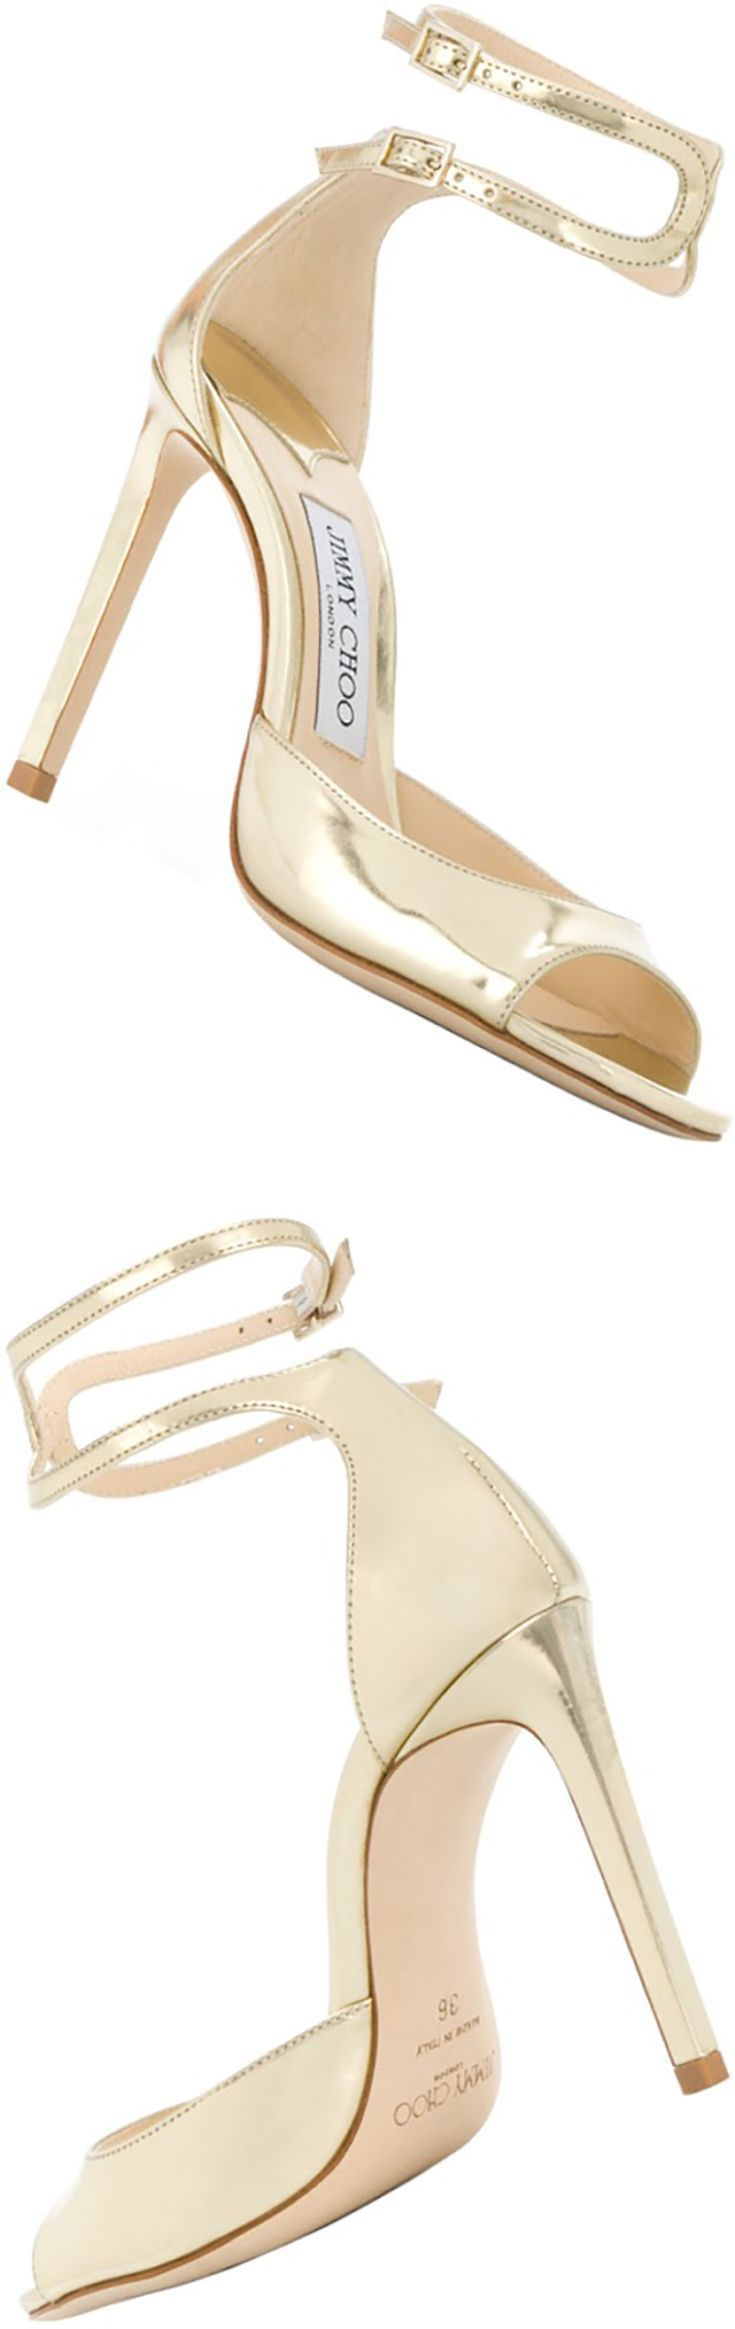 Jimmy Choo knows how to transform the ordinary into something extraordinary. These gold-tone leather Lane 100 sandals feature an almond toe, a high stiletto heel, a peep toe, a branded insole and double ankle straps with gold-tone buckles. Pair with your favourite clutch bag to really add some drama to your evening wear attire.  #sandals #shoes #jimmychoo #afflink #gold #heels #stilettoheelsjimmychoo